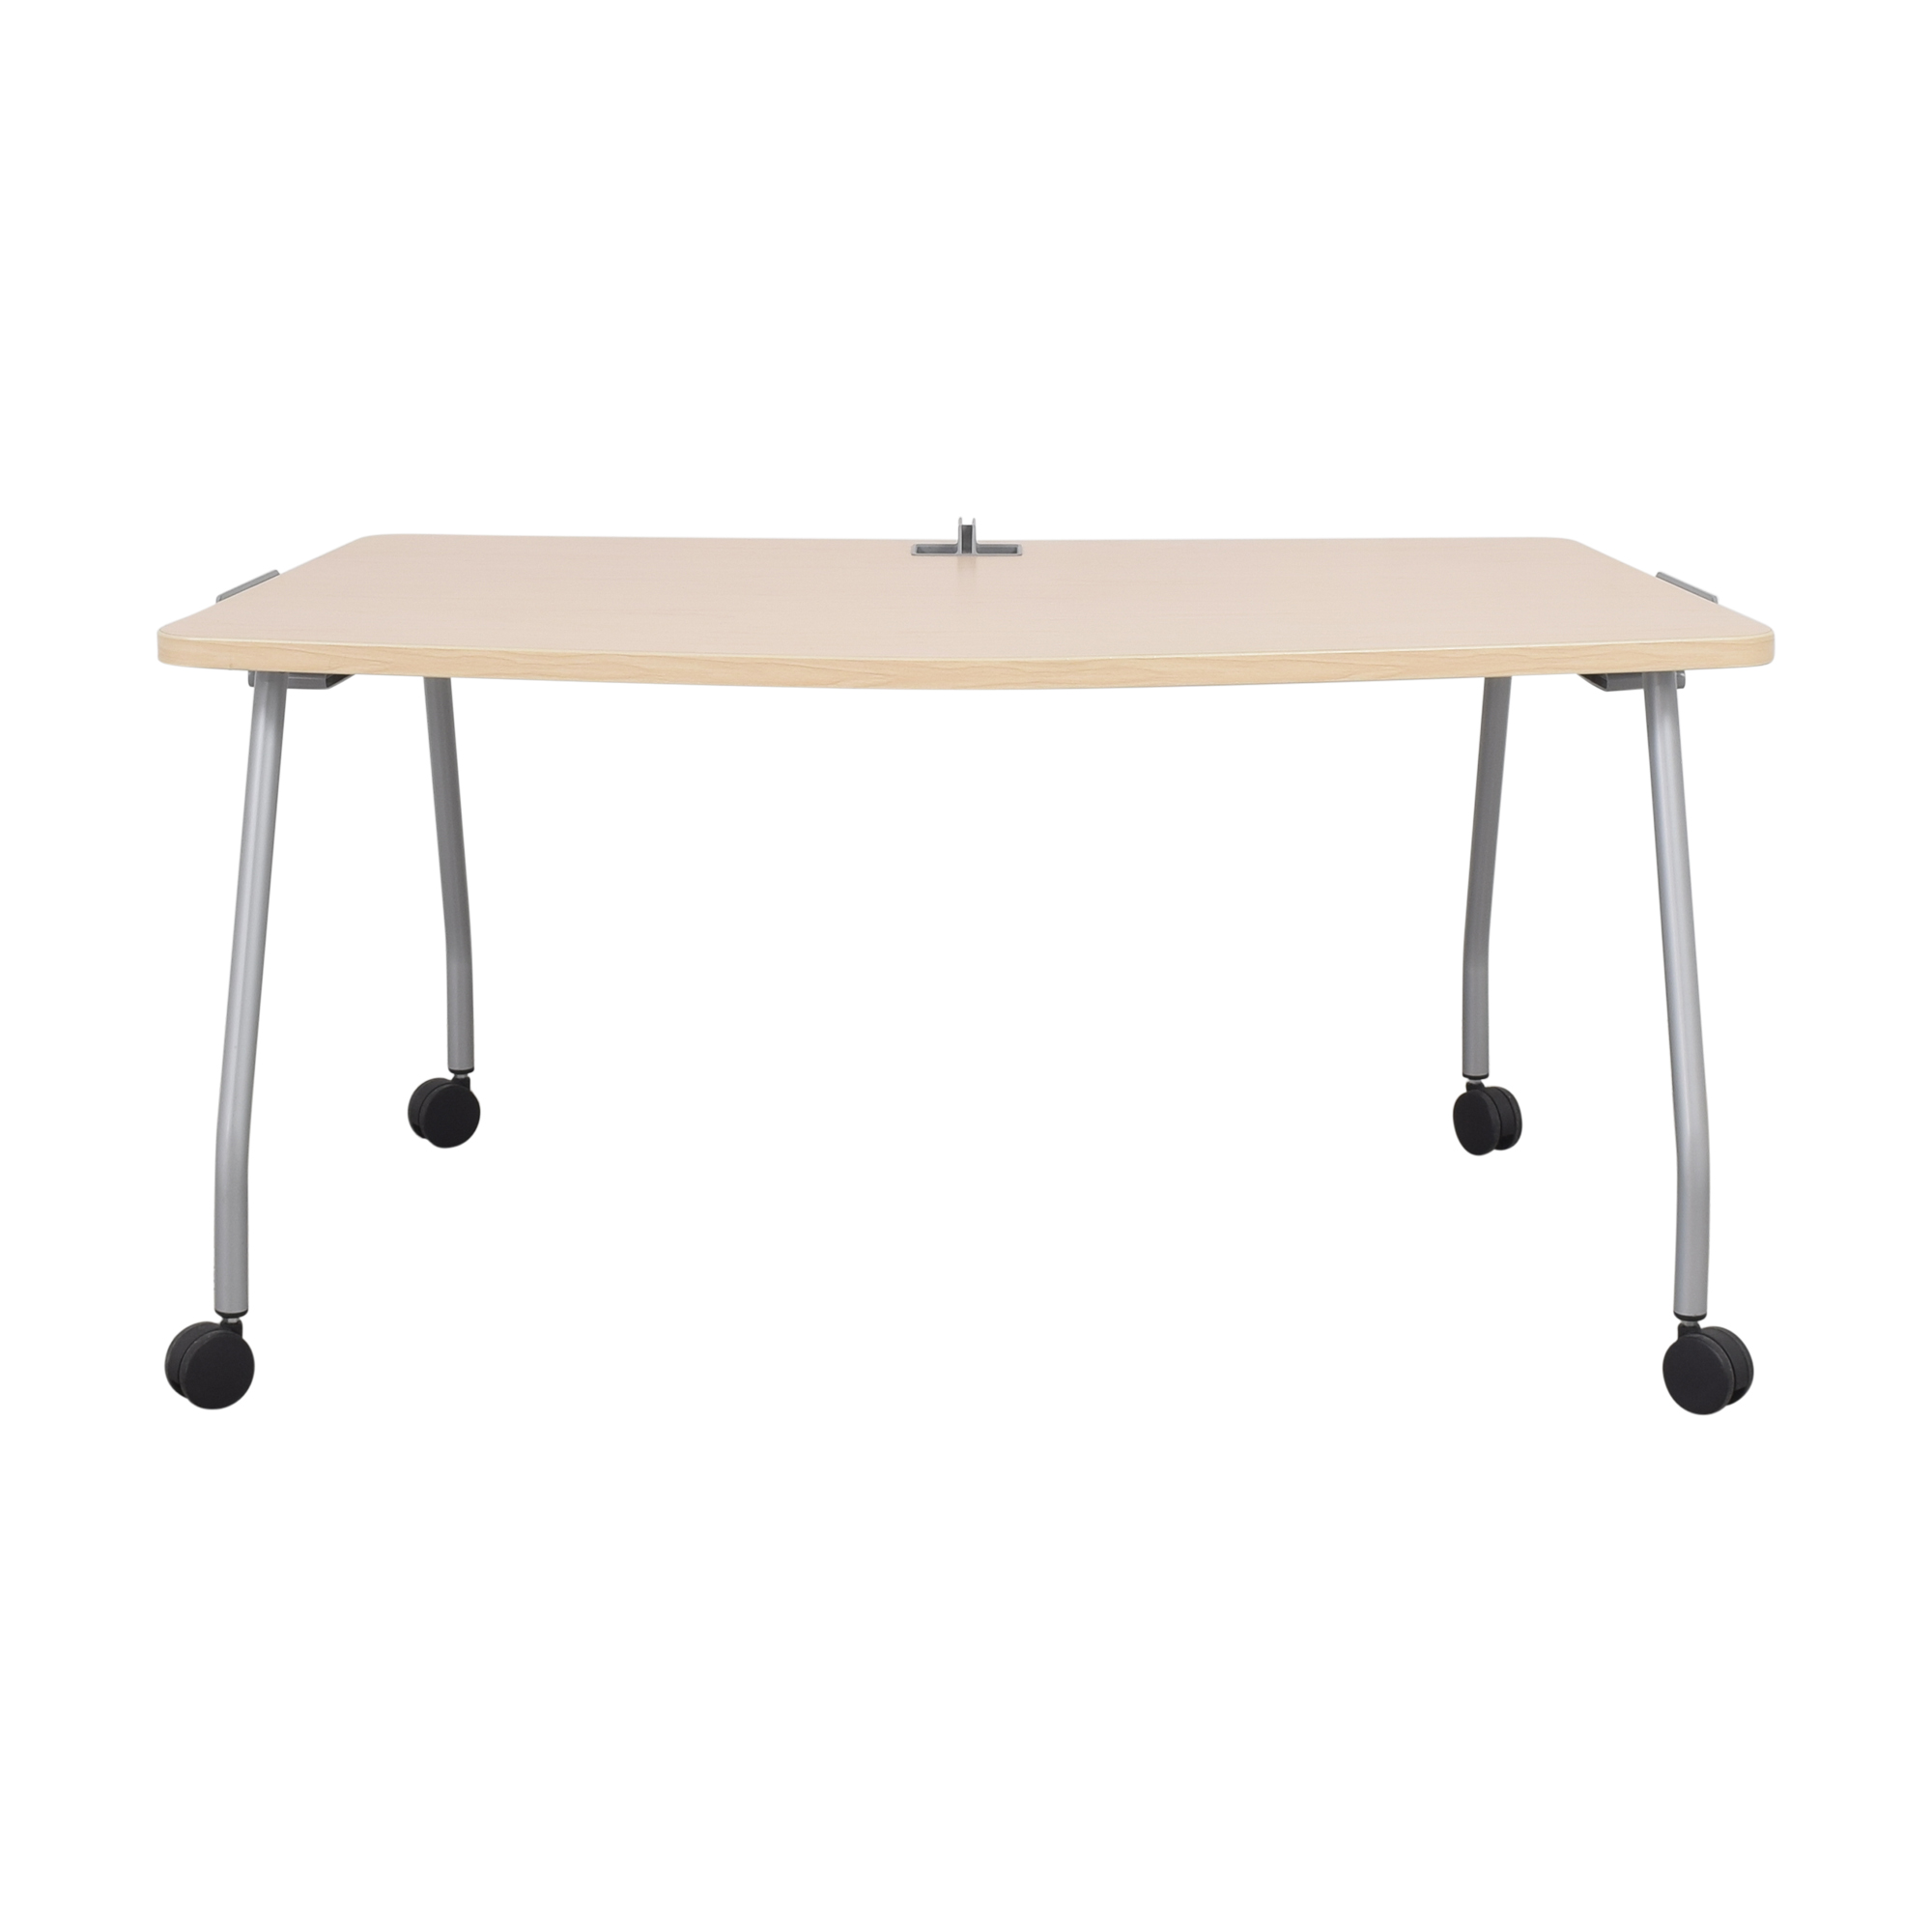 Steelcase Steelcase Verb Chevron Table with Dry Erase Board ma